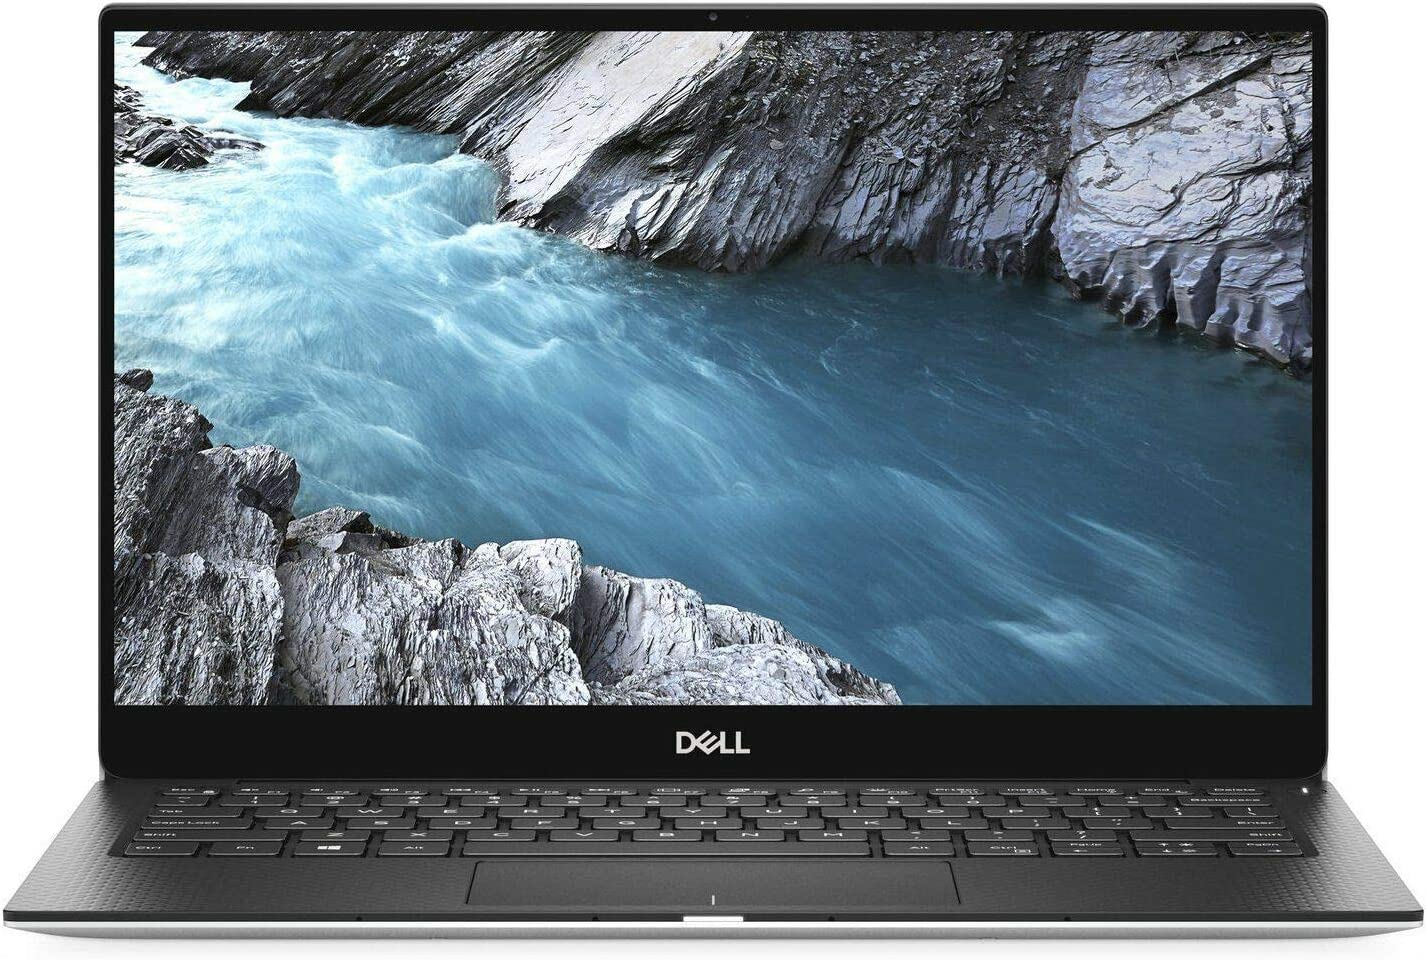 2019 Dell XPS 13 9380 Core i7-8565U 16GB 1TB PCie SSD 4K 3840x2160 Infinity Edge Touch Screen Windows 10 pro (Renewed)